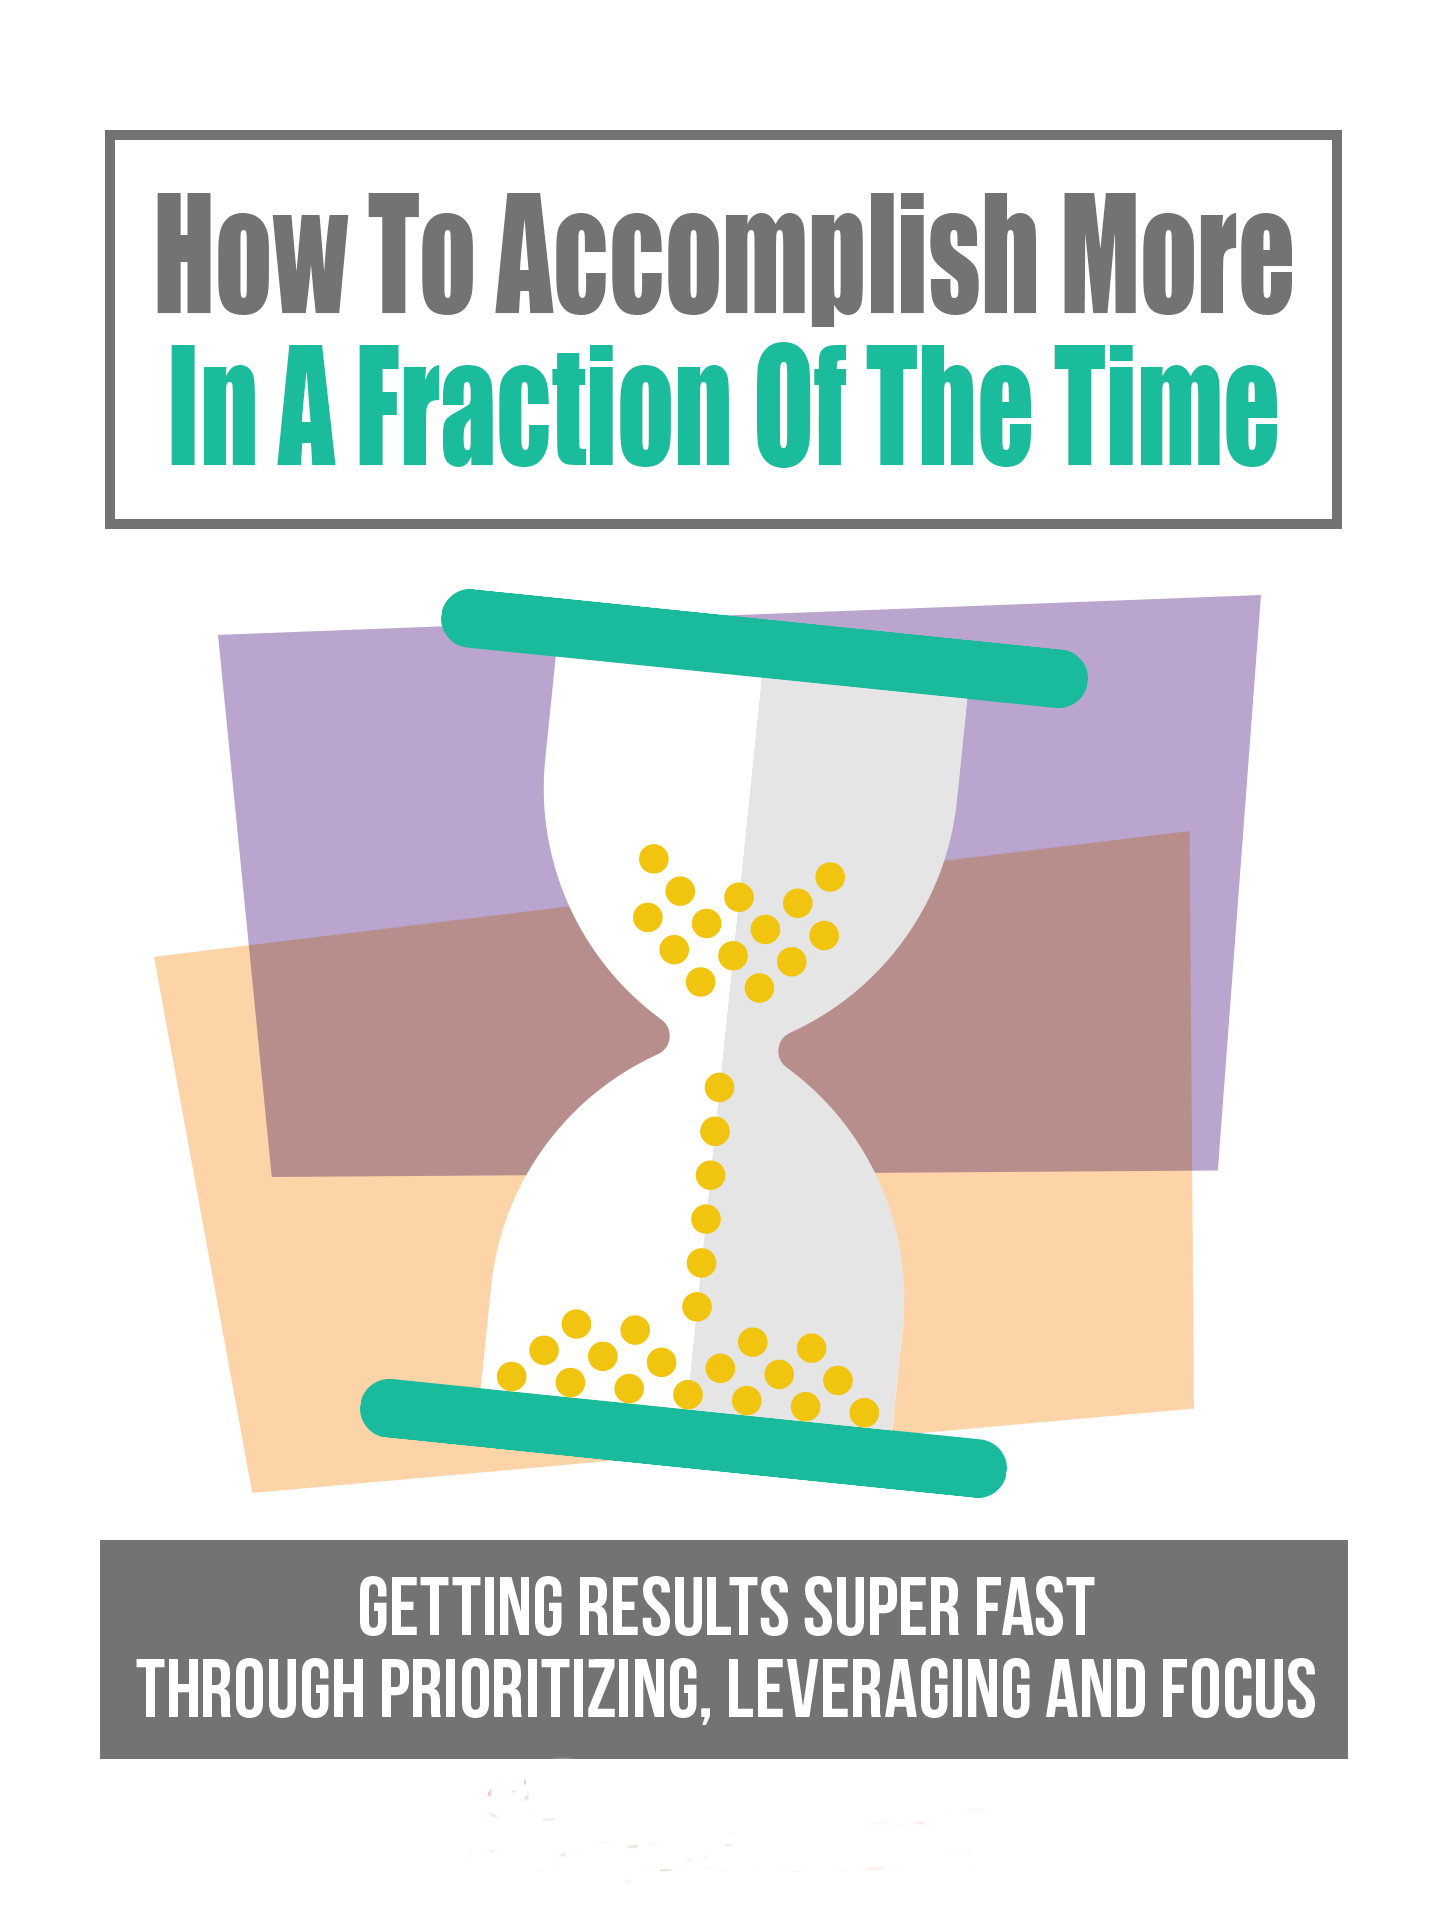 How To Accomplish More With Less Time